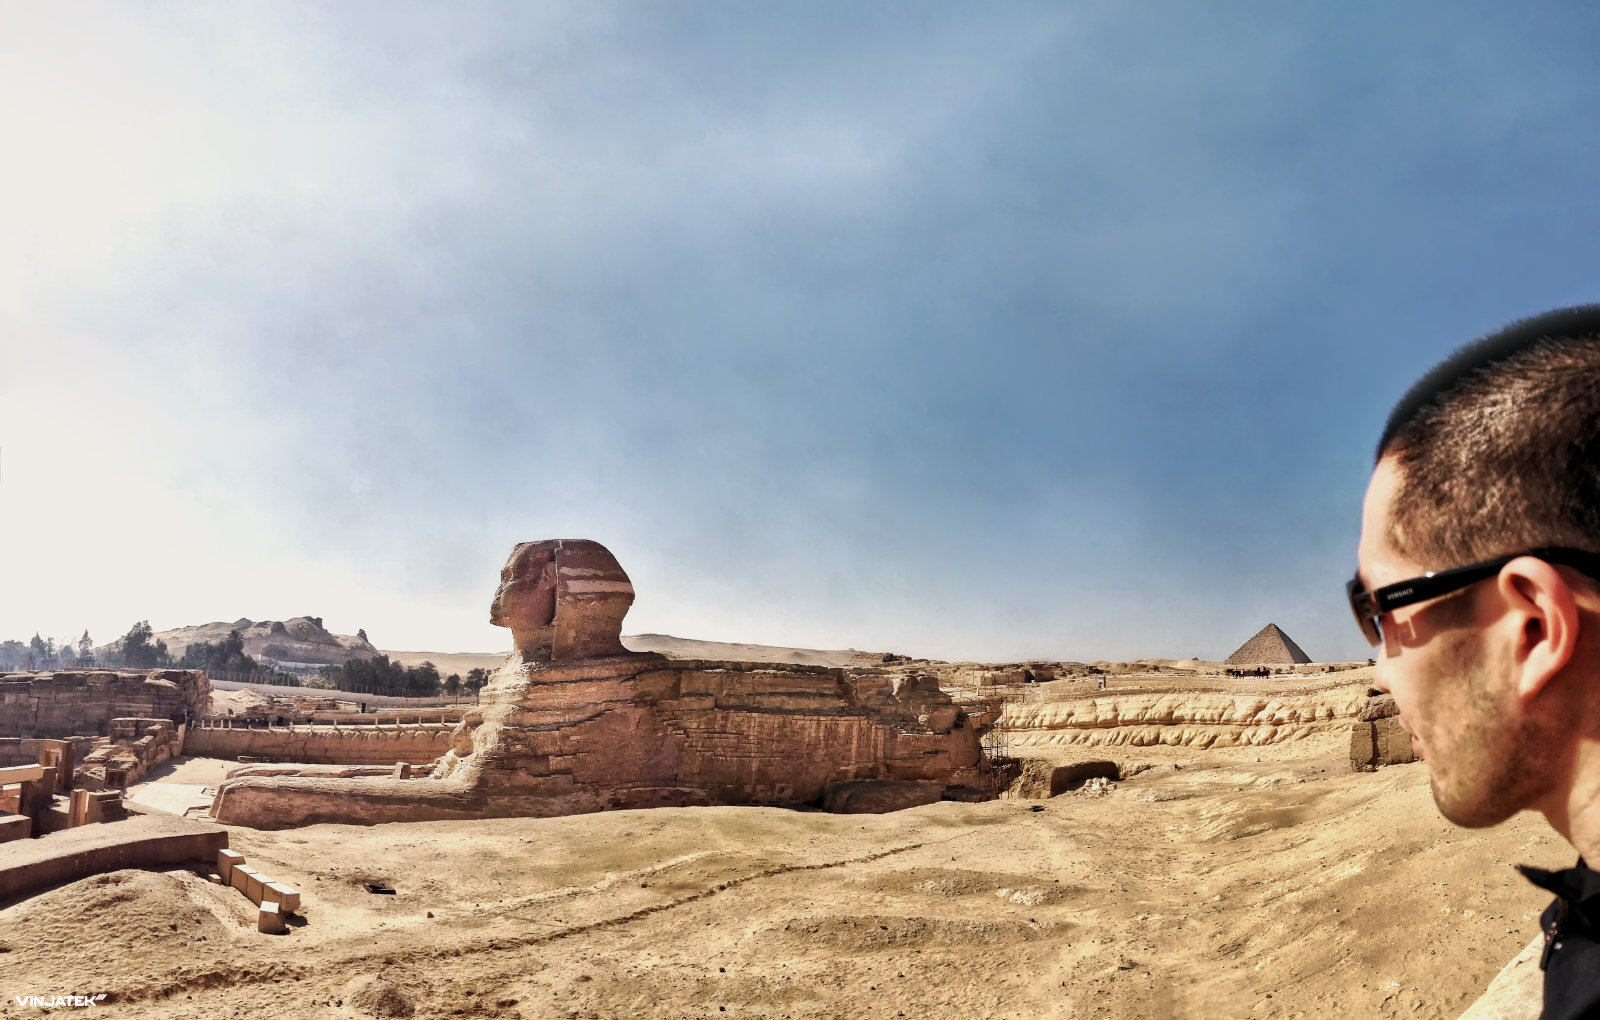 The Great Sphinx of Giza /// Vinjatek